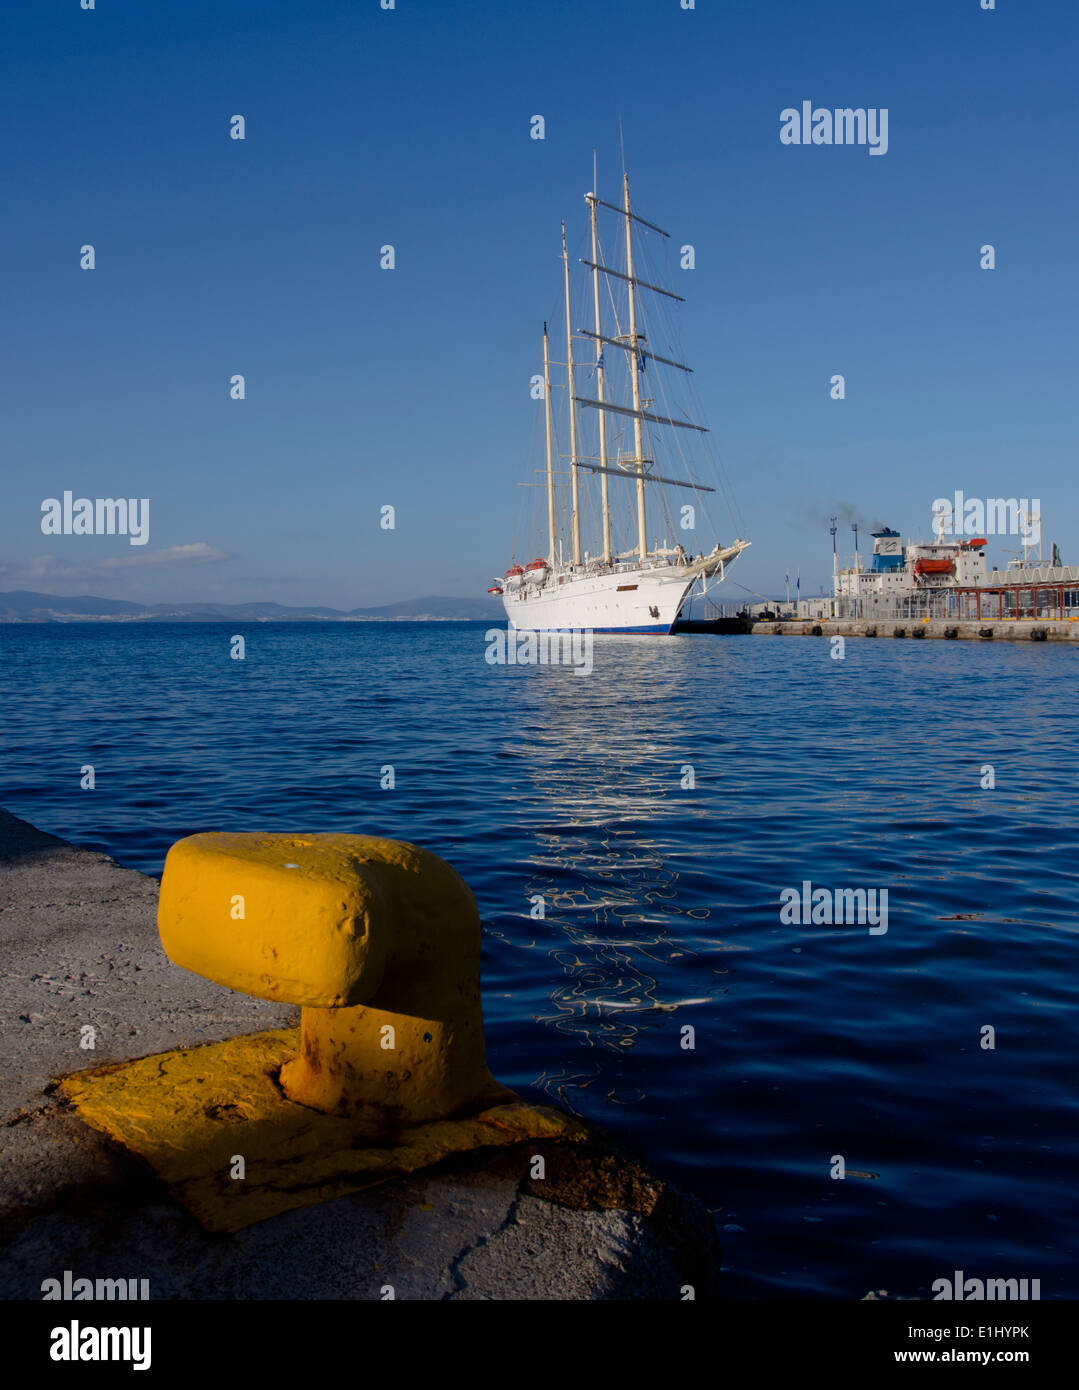 View across Kos Town port towards a square rigged yacht. - Stock Image